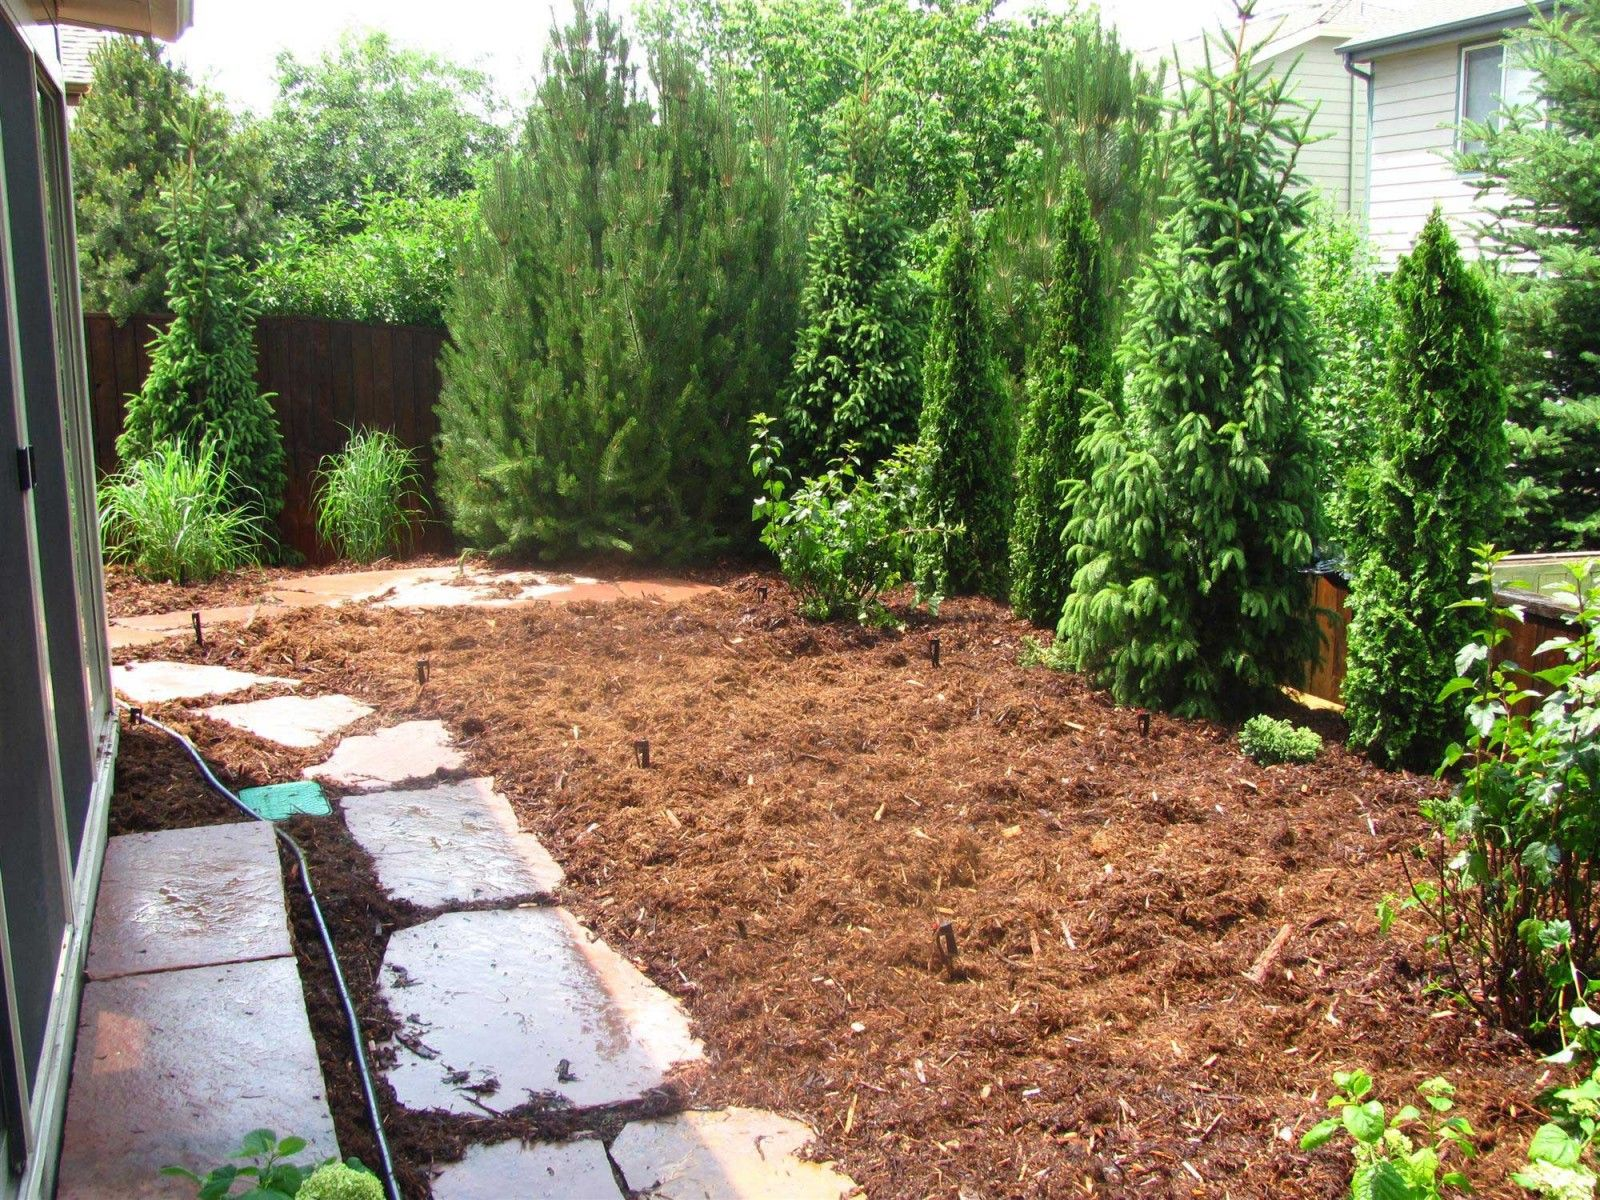 Backyard landscaping for privacy gunbarrel colorado for Garden design ideas for privacy